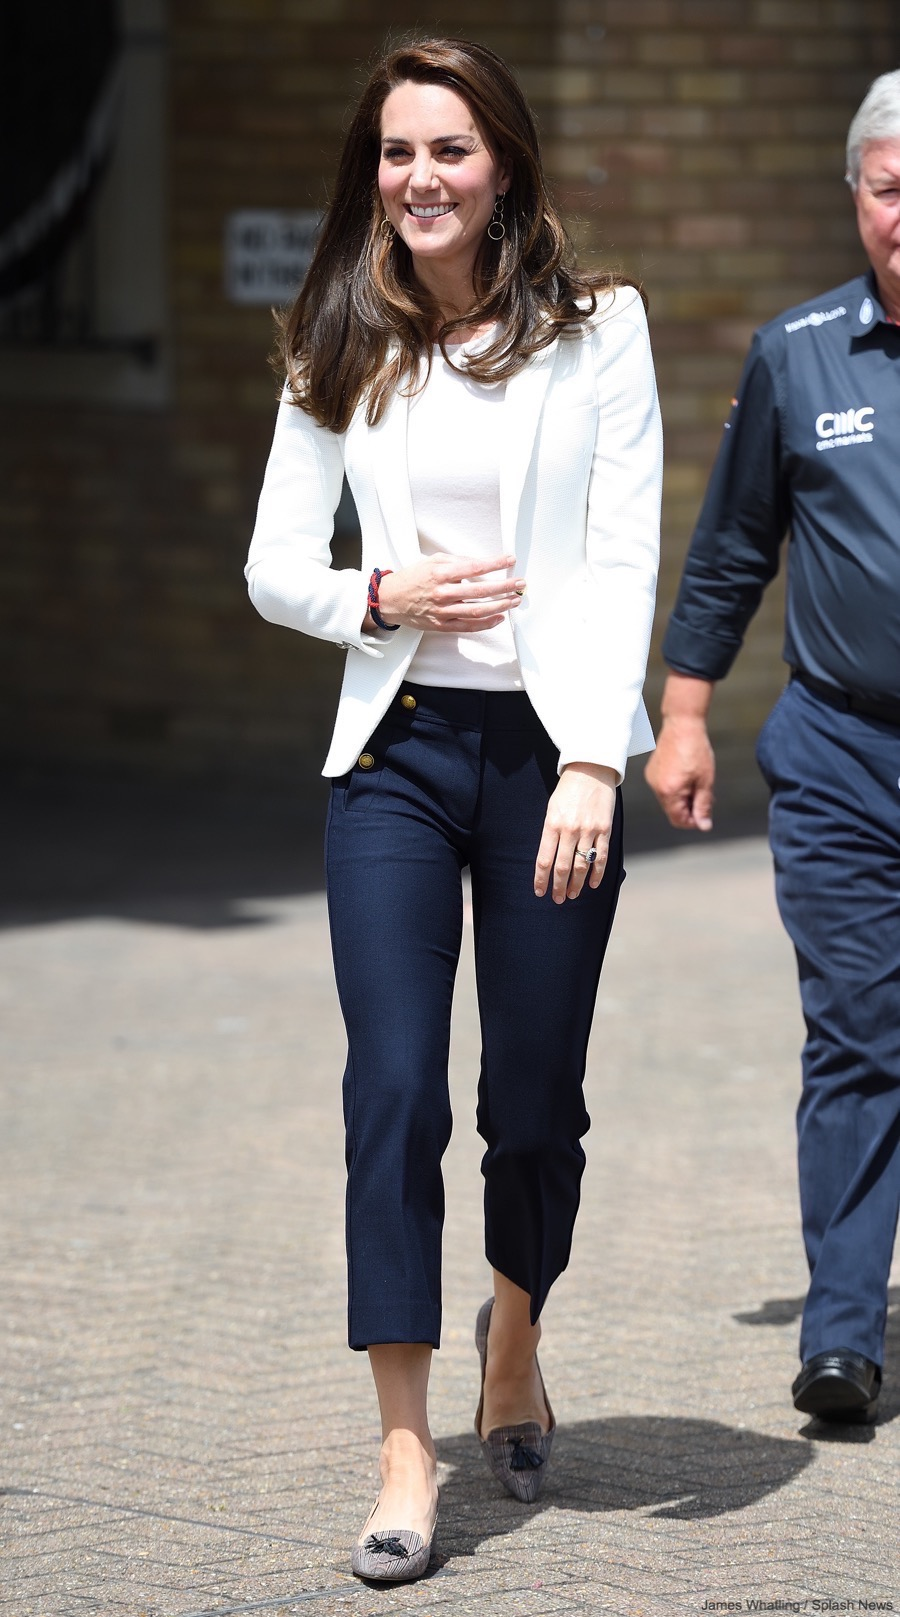 Kate Middleton wearing JCrew pants to the 1851 Trust Roadshow